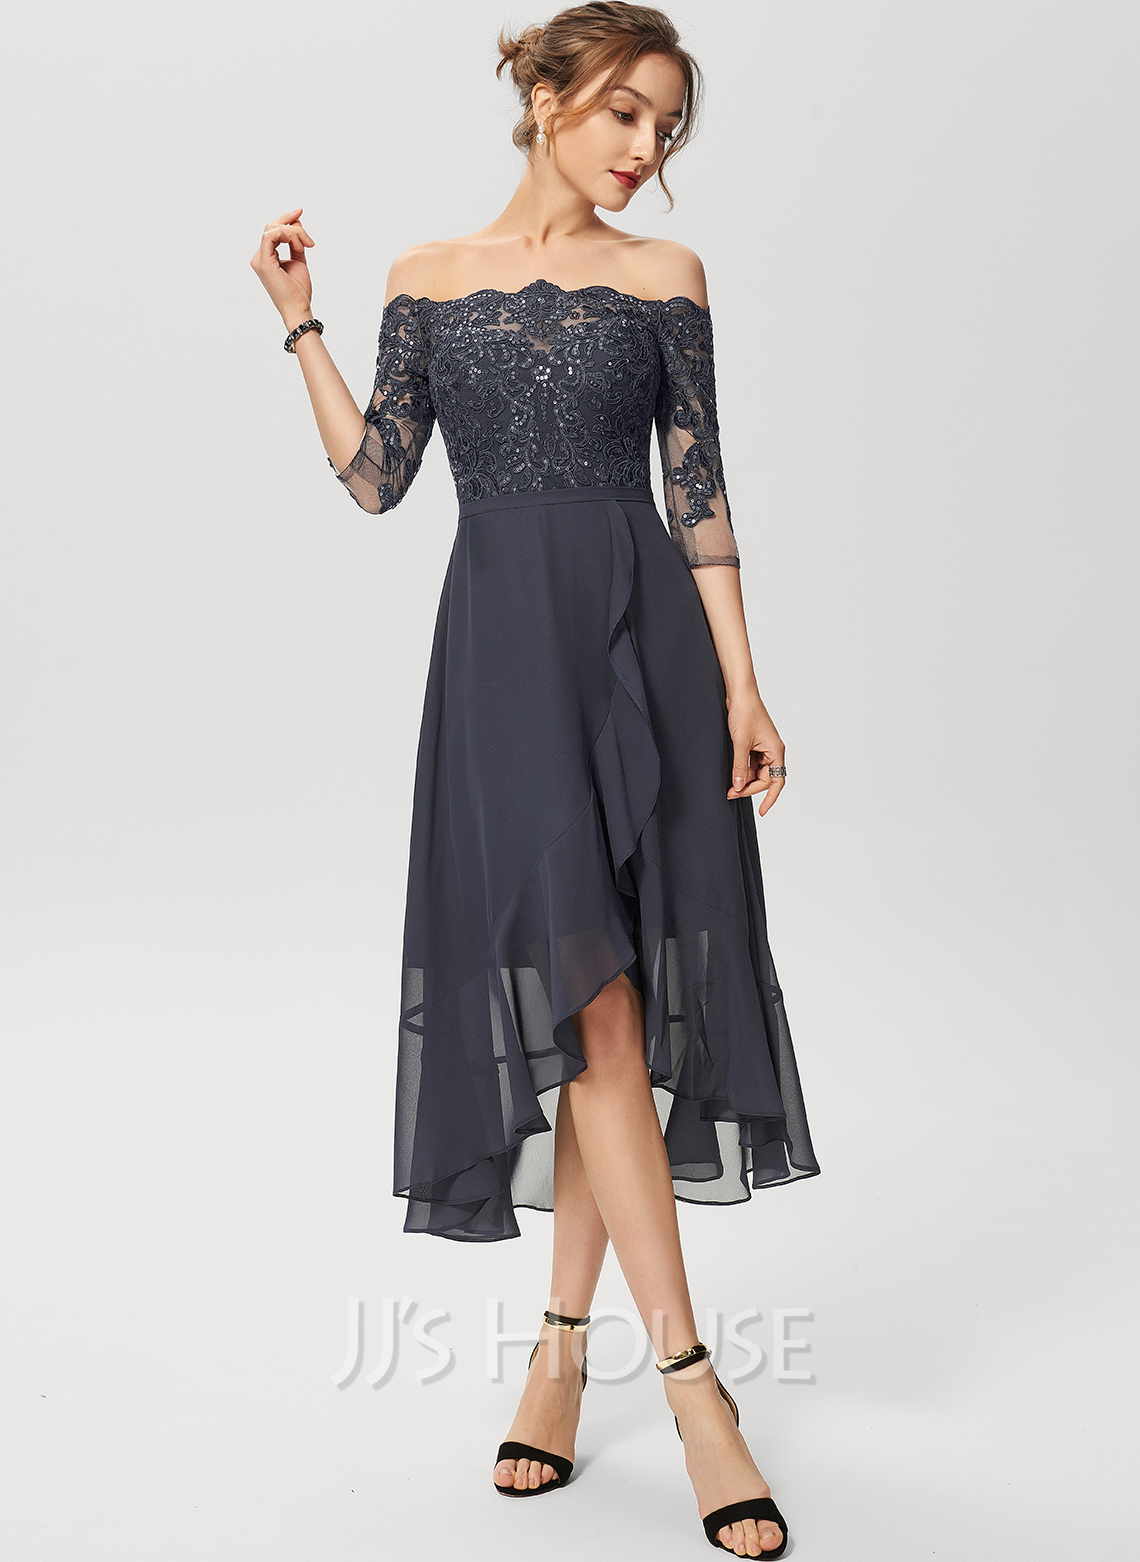 Off-the-Shoulder Asymmetrical Chiffon Lace Cocktail Dress With Sequins